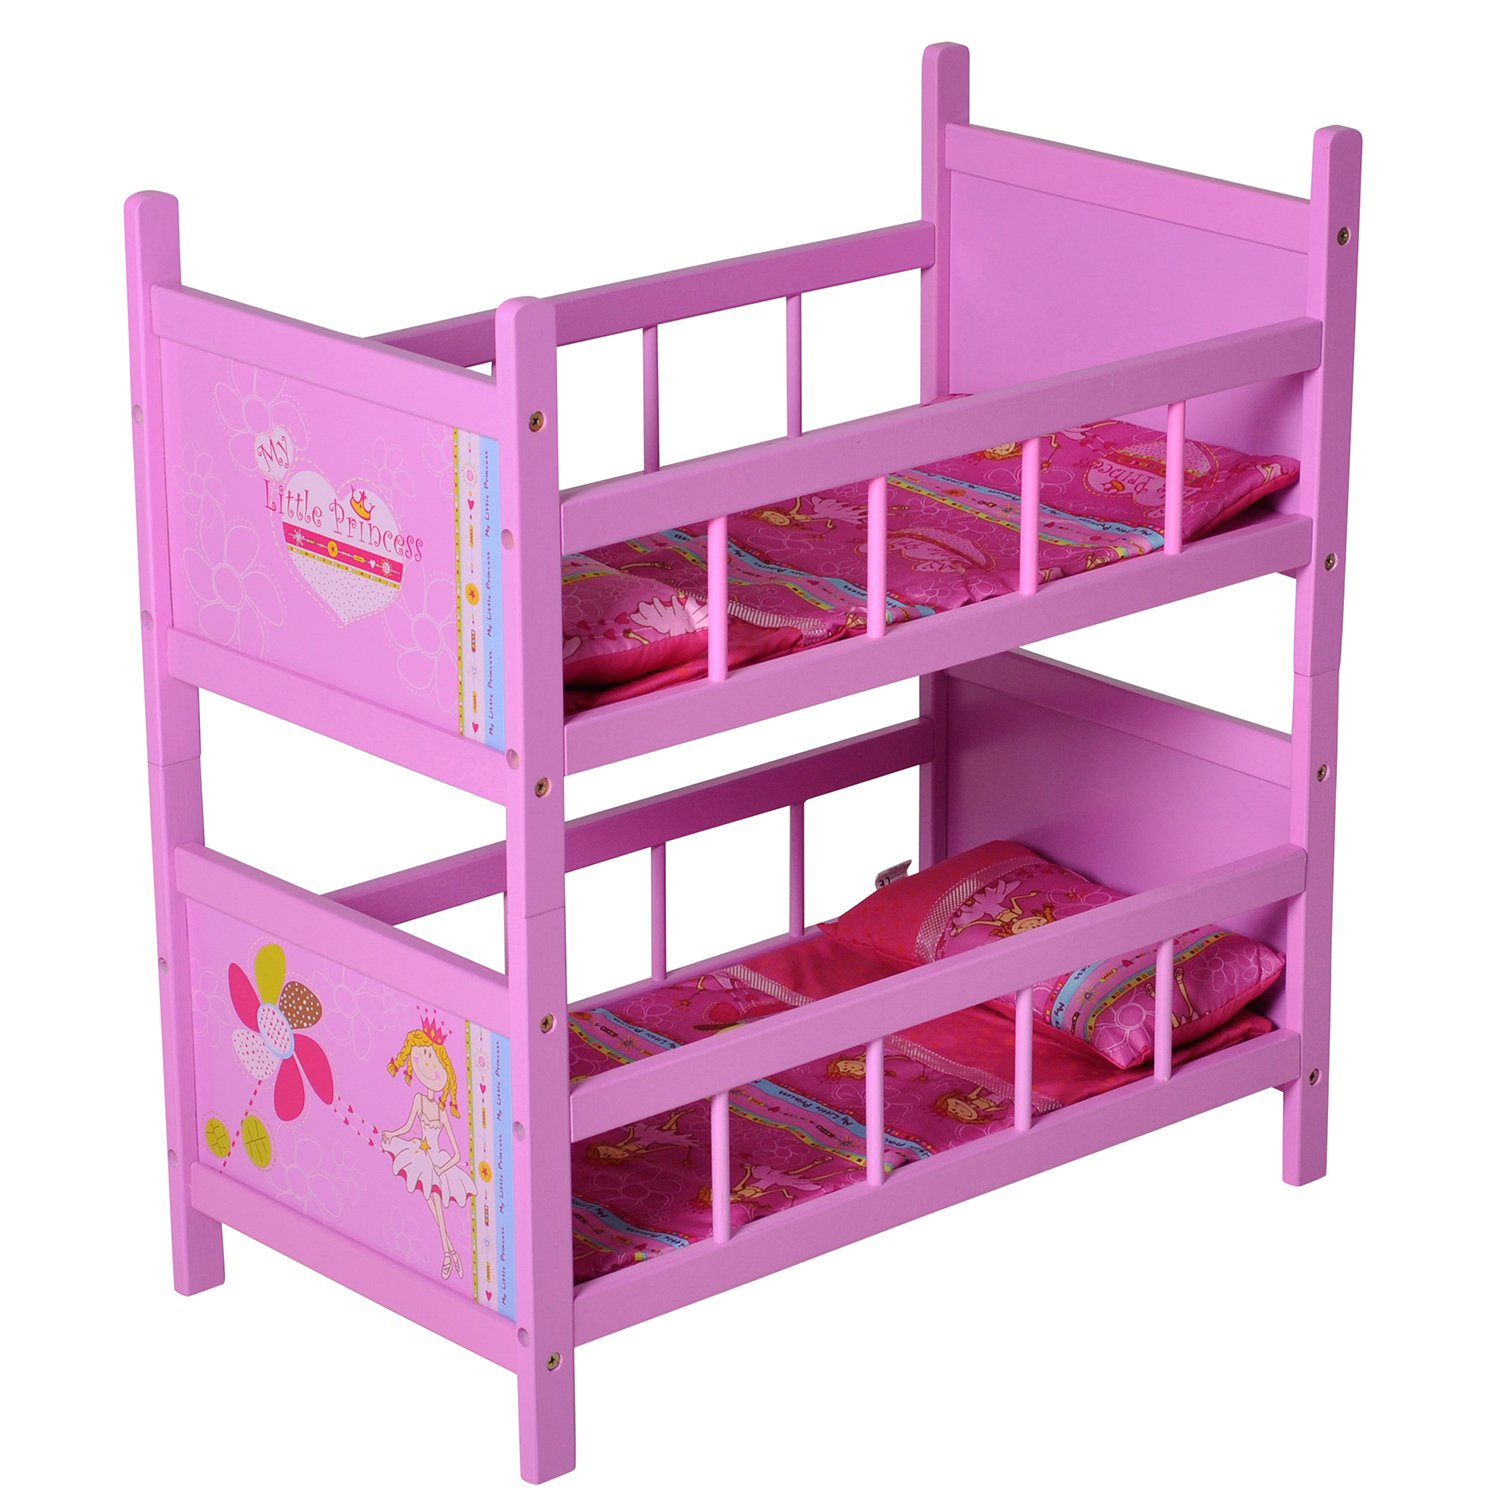 Knorrtoys  67804- My Little Princess, letto a castello per bambole, colore  rosa